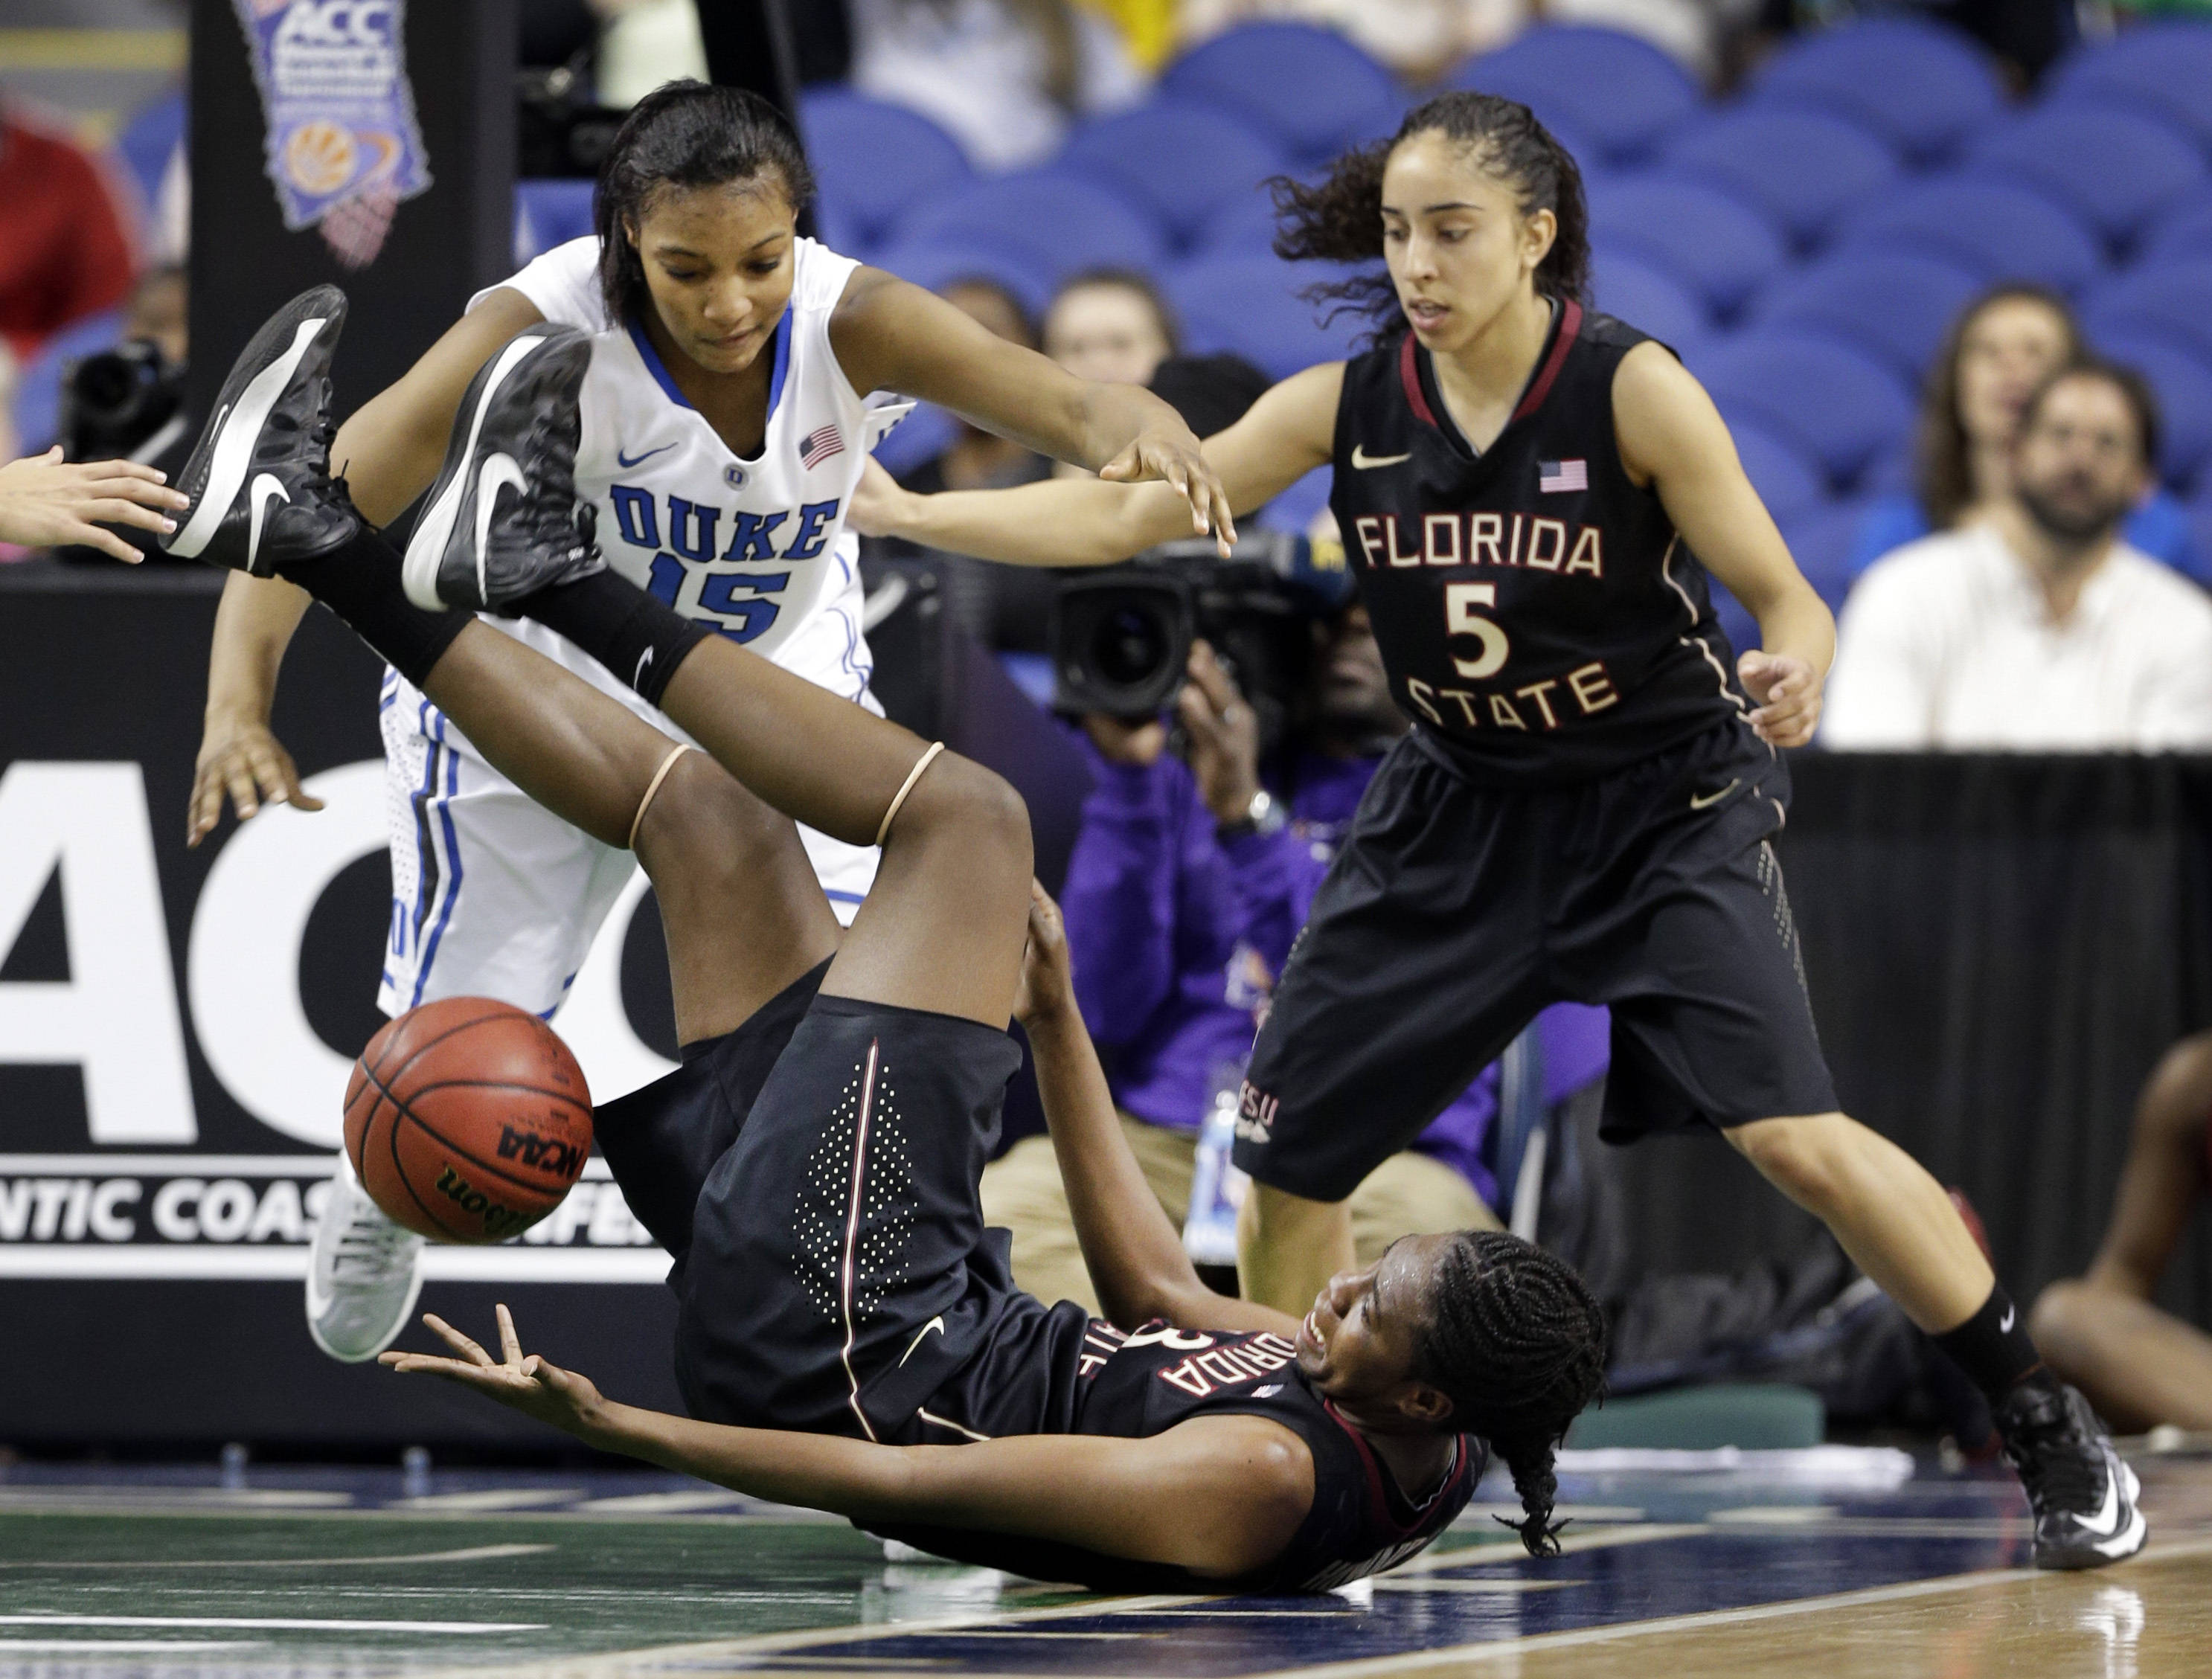 Florida State's Natasha Howard (33) loses the ball as Yashira Delgado (5) and Duke's Richa Jackson (15) close in. (AP Photo/Chuck Burton)